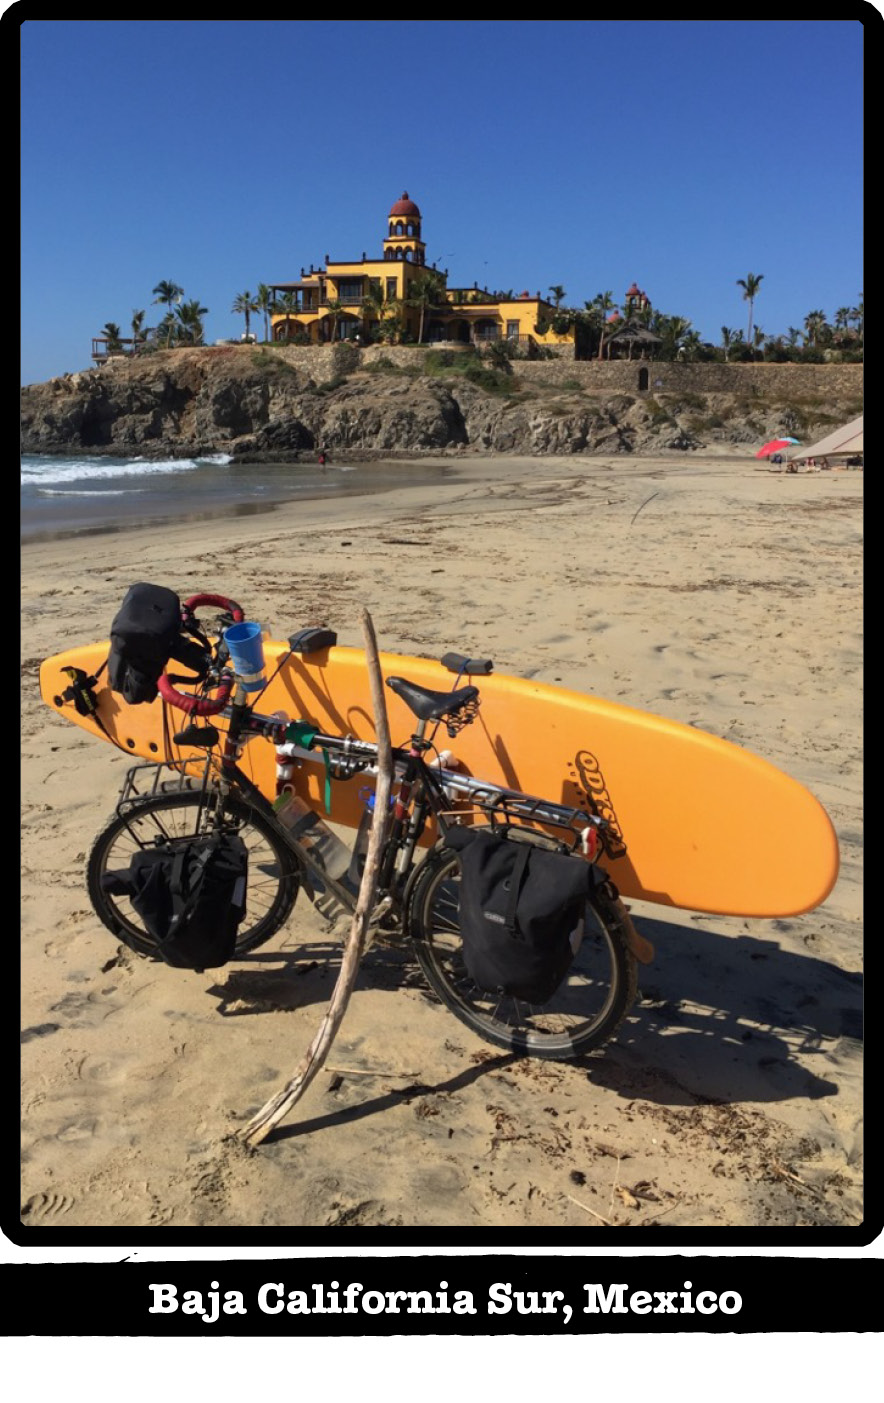 Left side view of a bike, gear and surfboard mounted, on the beach-Baja California Sur, Mexico banner below image